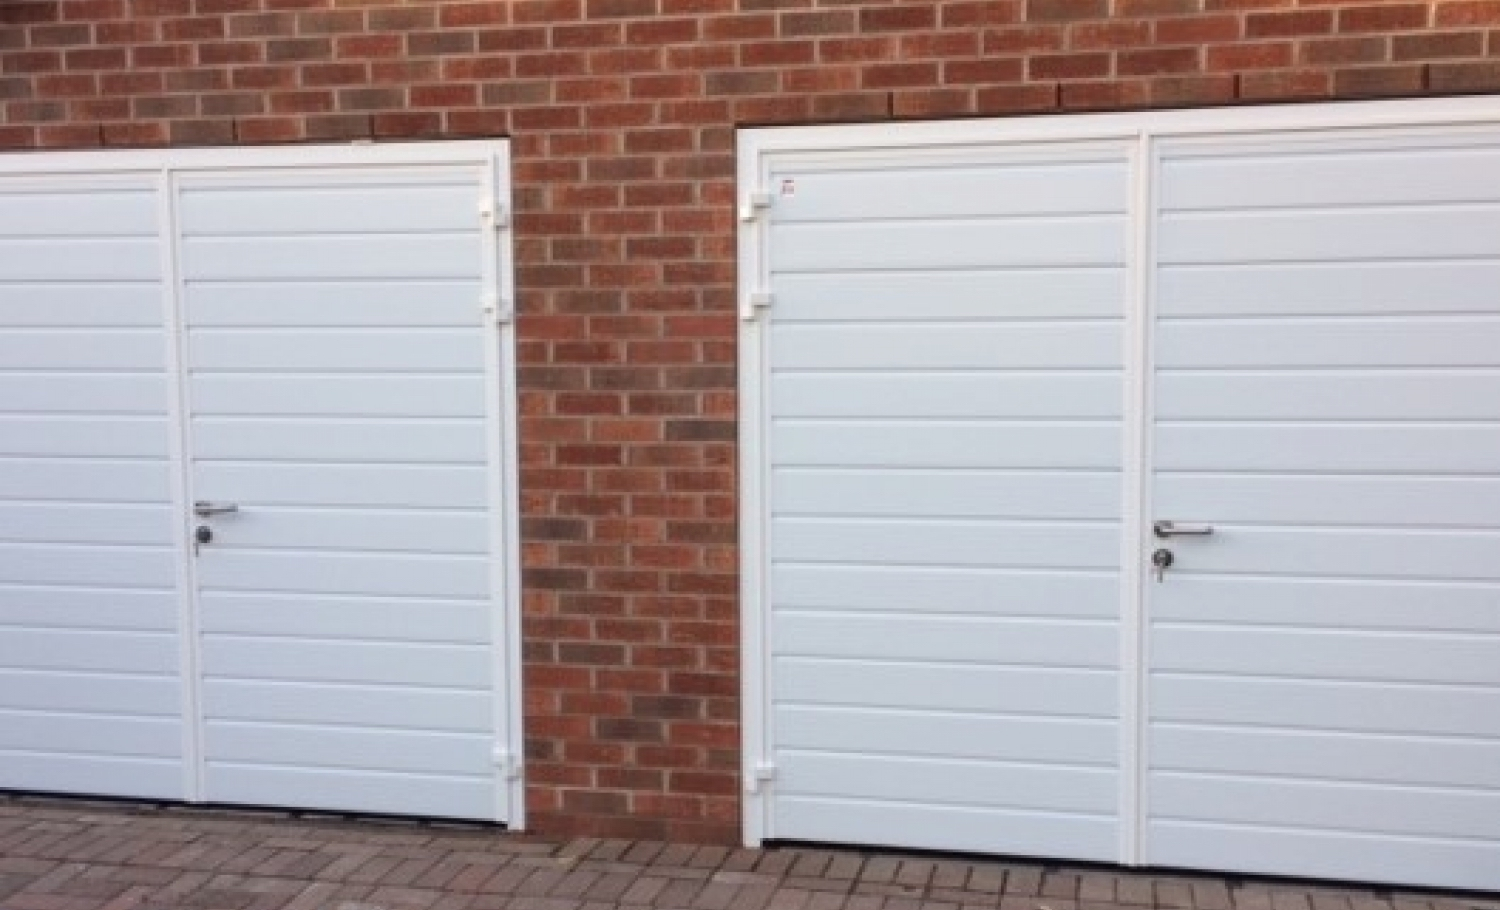 CarTeck GSW 40-L insulated side-hinged doors in standard (small) rib